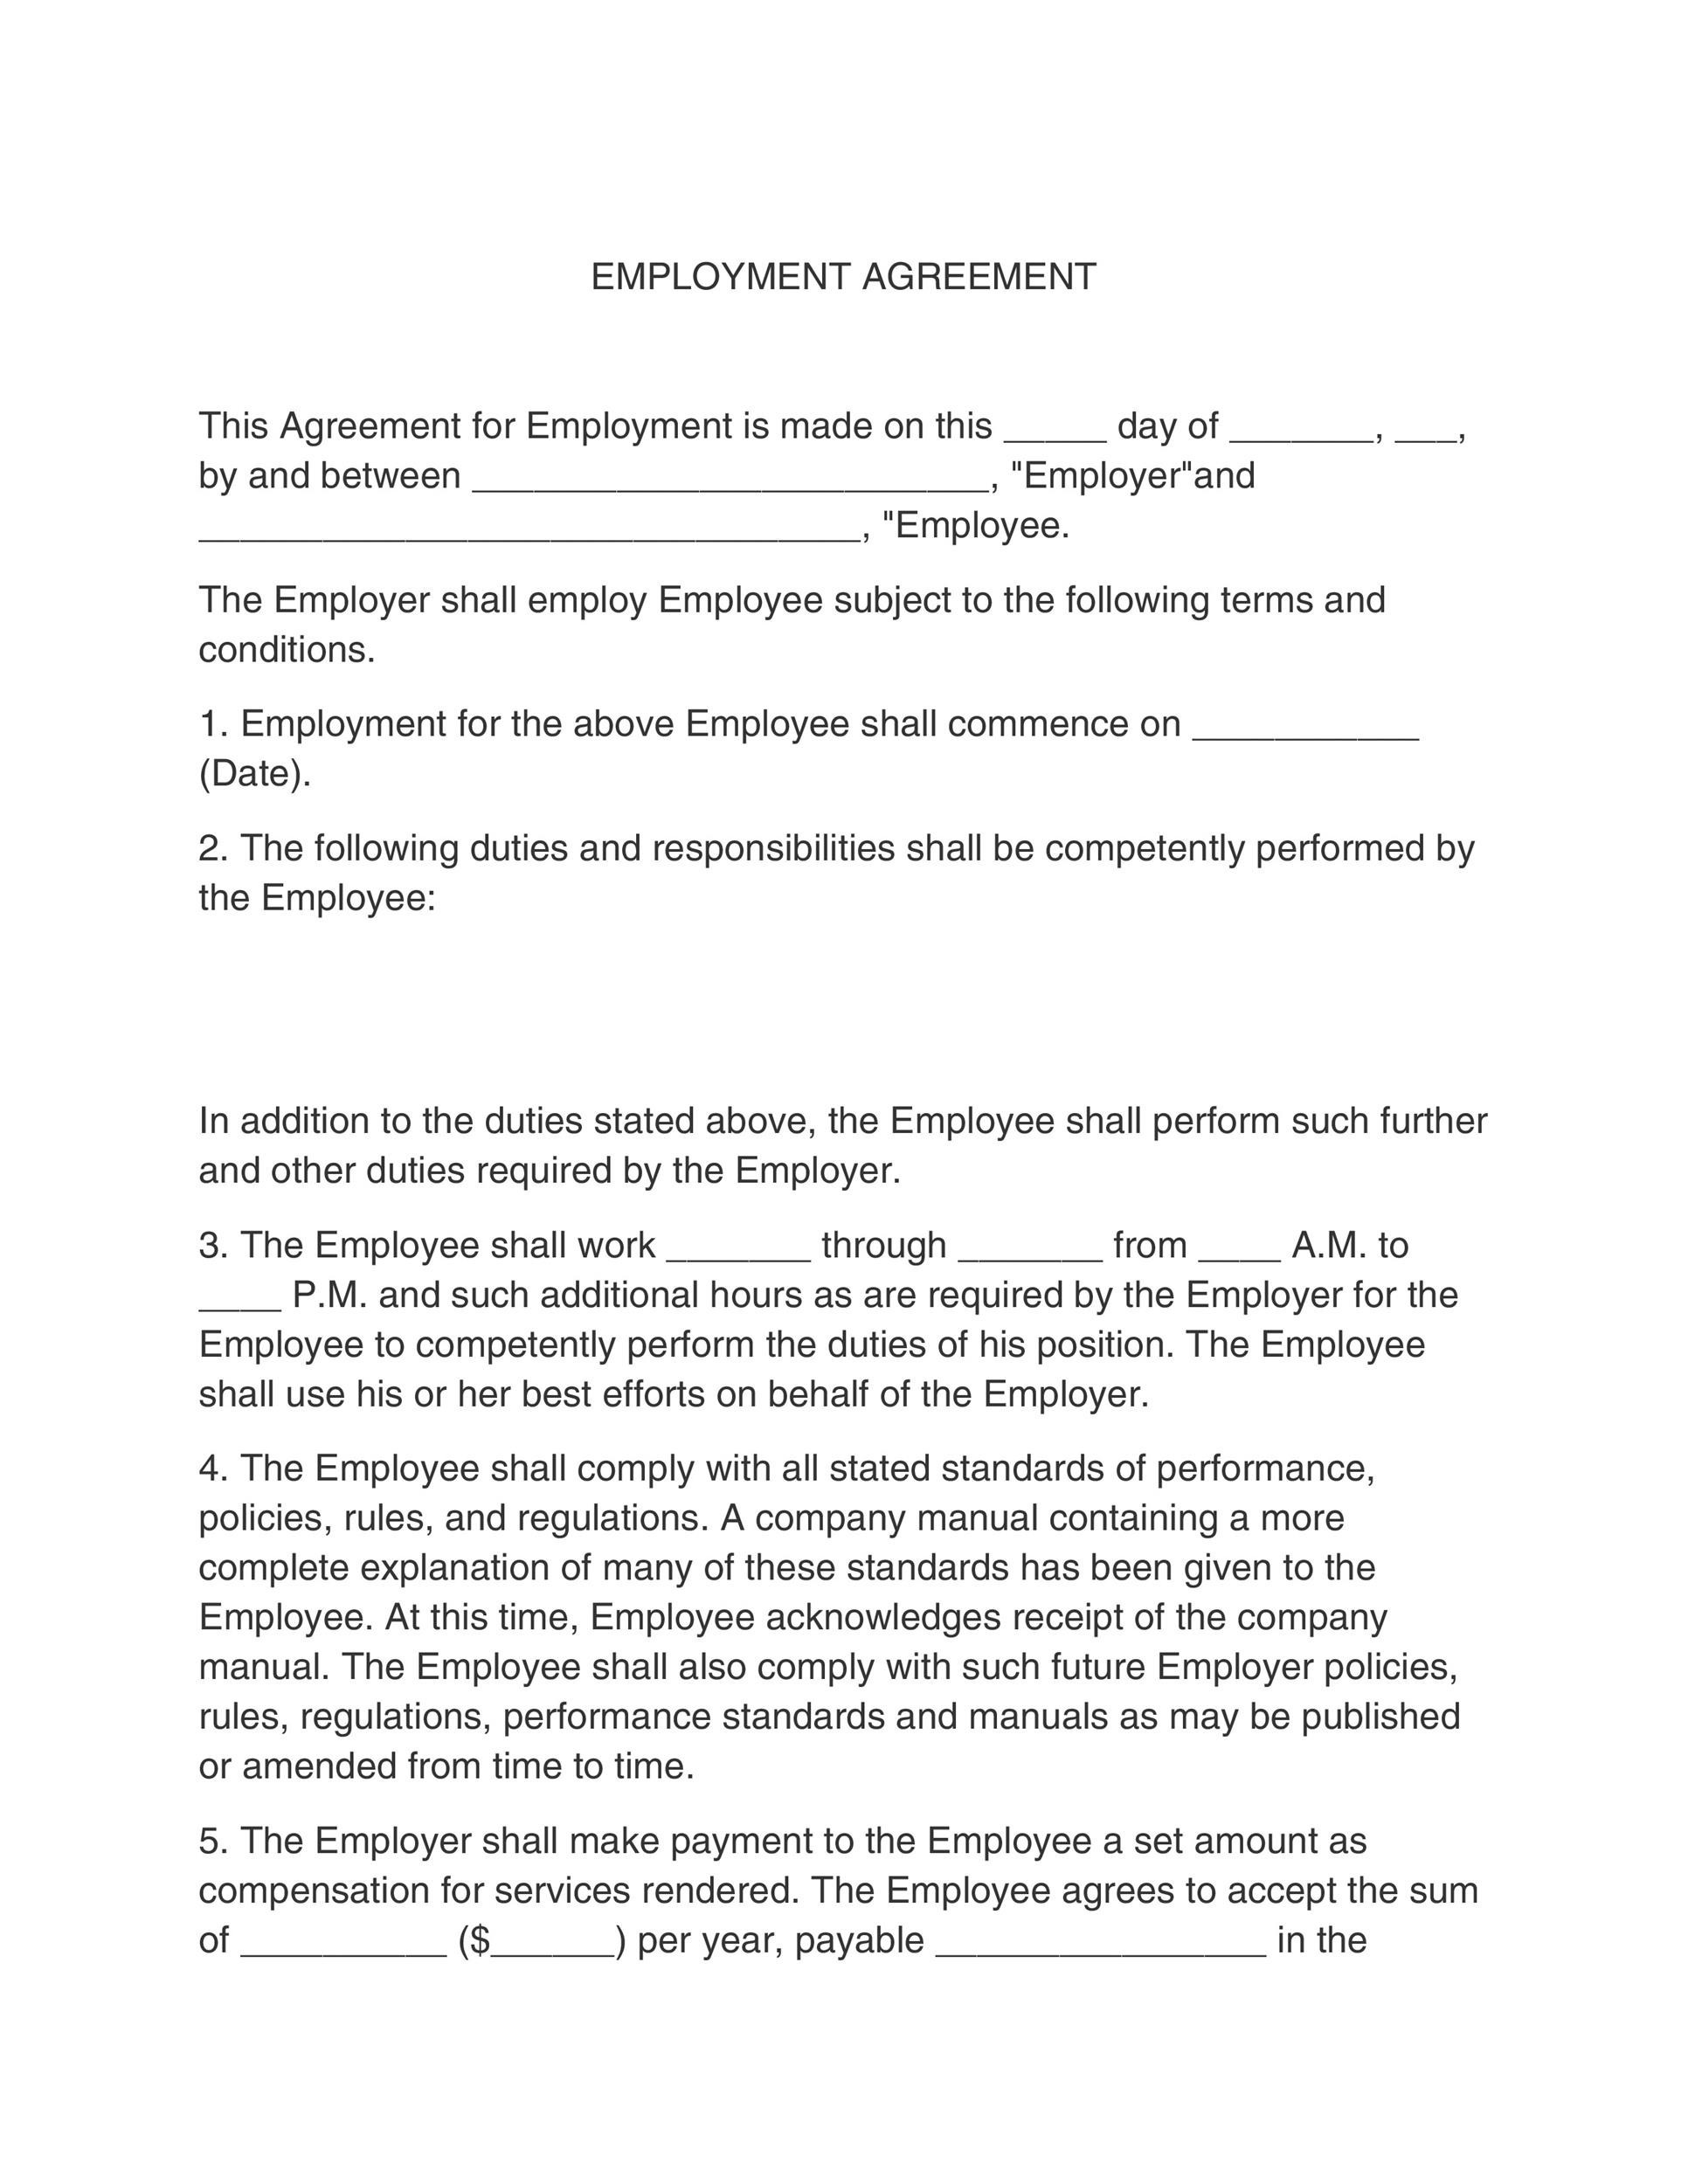 training terms and conditions template - 40 great contract templates employment construction